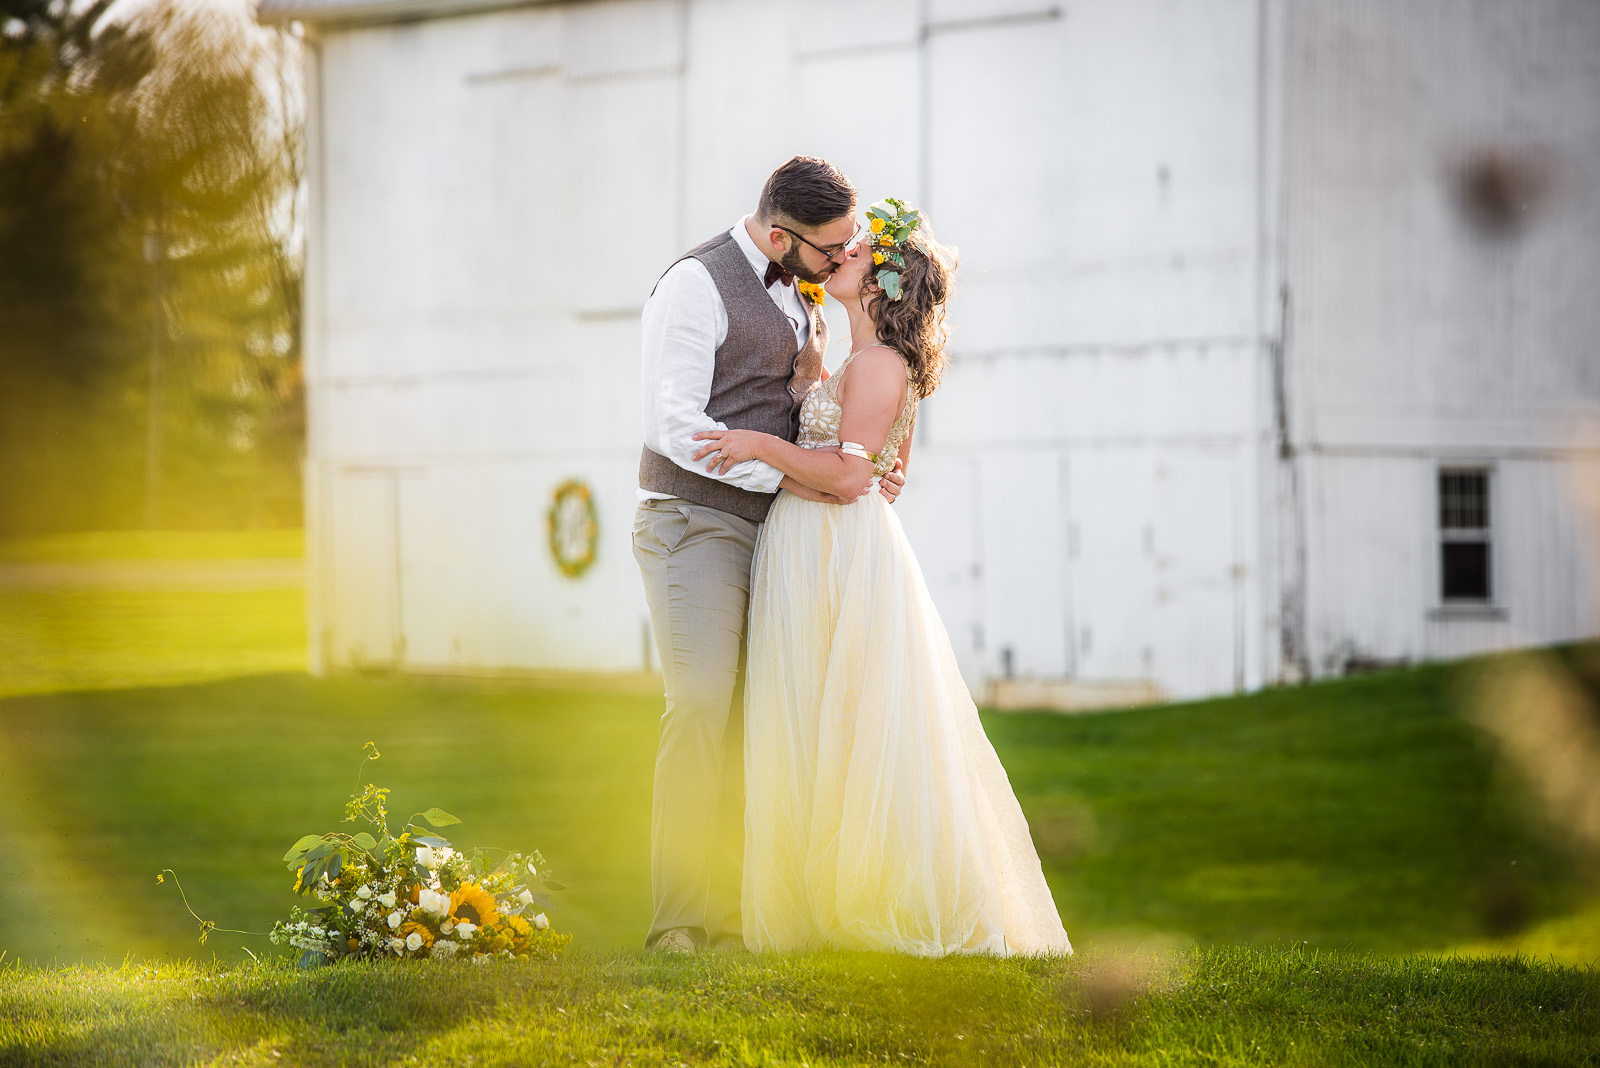 Eric_and_Christy_Photography_Blog_Wedding_Lauren_Jon-22